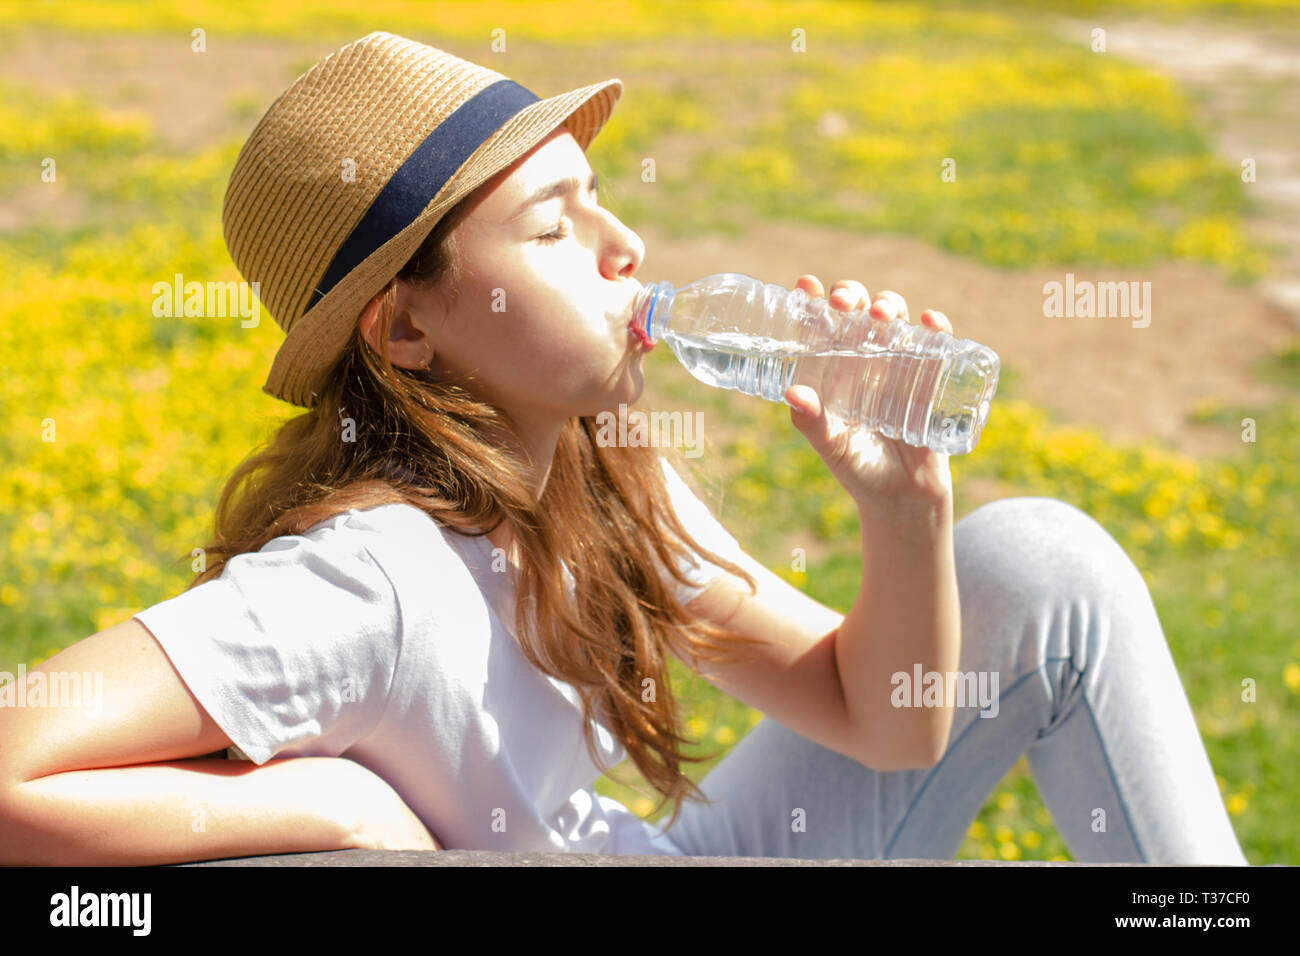 Beautiful teen girl drinks clean water from a plastic bottle on hot summer day. Selective focus - Stock Image